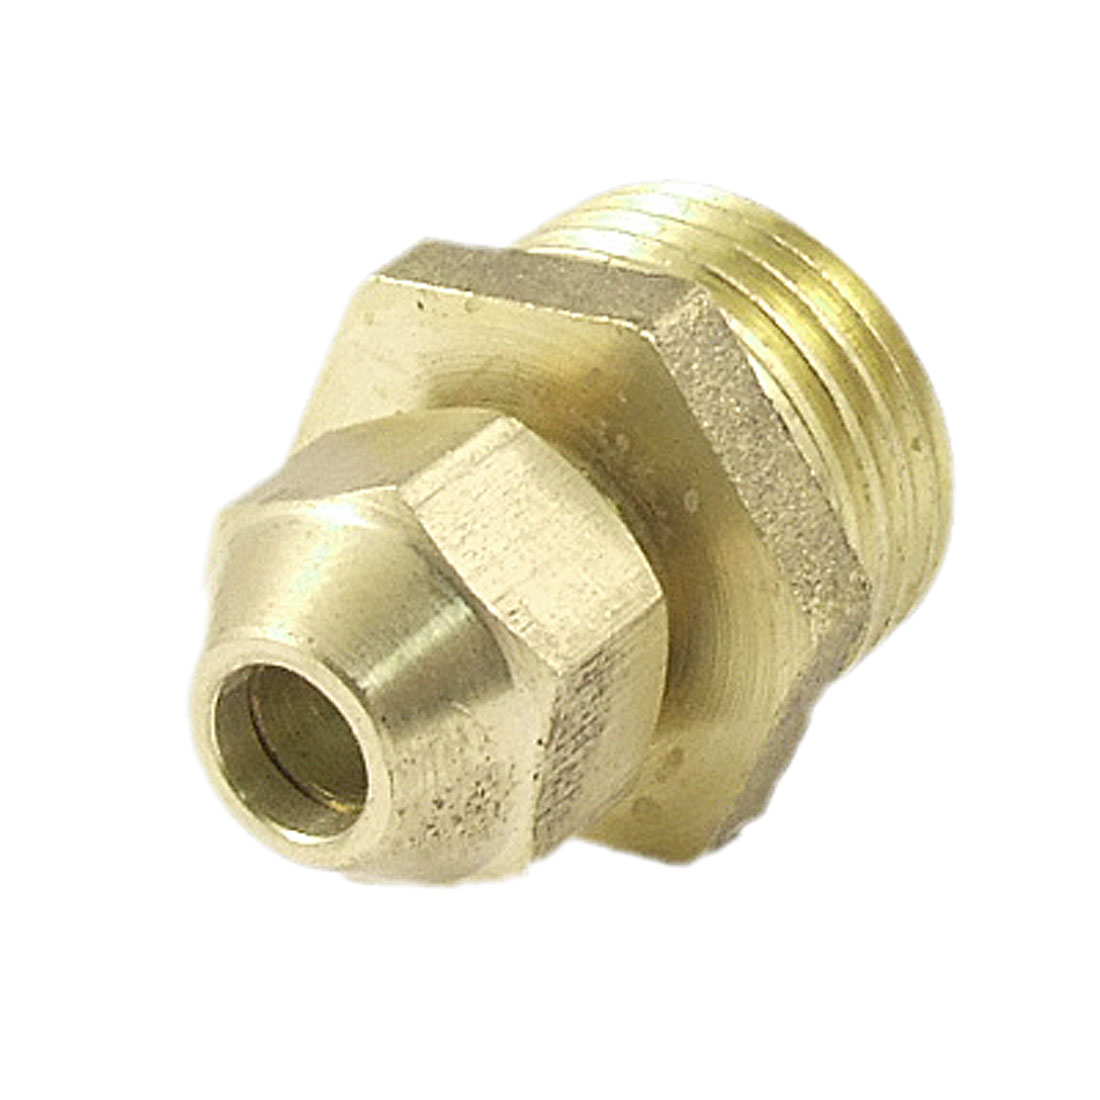 "25/32"" Male Thread 15/64"" Tube Pneumatic Air Quick Coupler Joint"